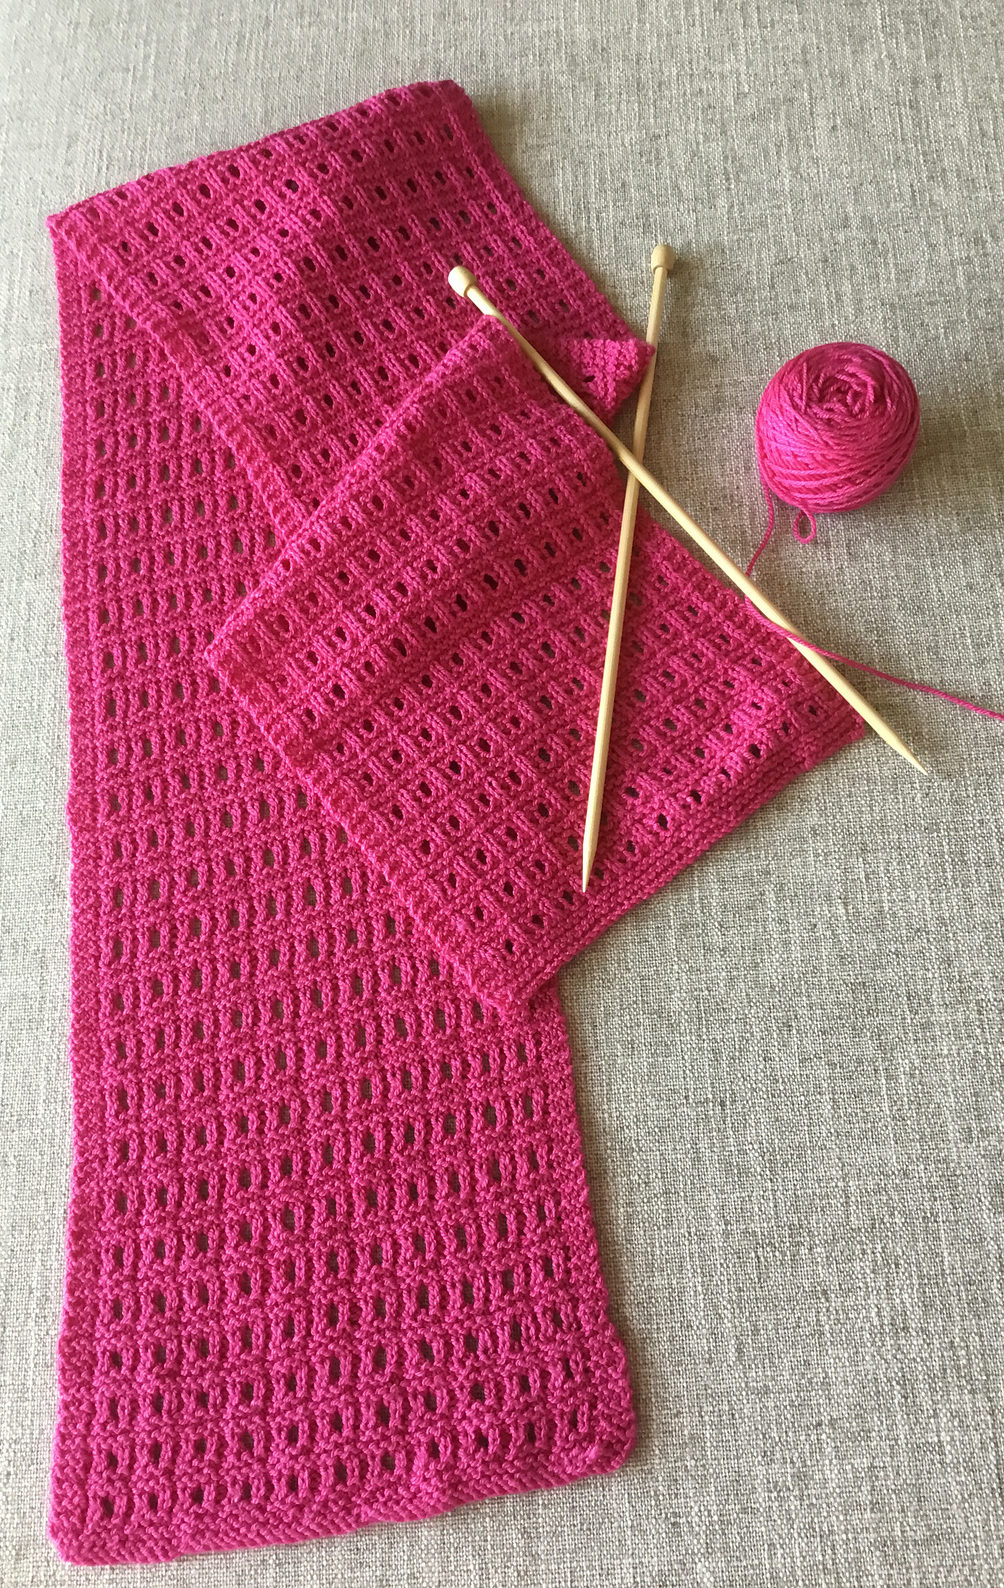 Knitting Scarf Pattern For Beginners Free Reversible Scarf Knitting Patterns In The Loop Knitting